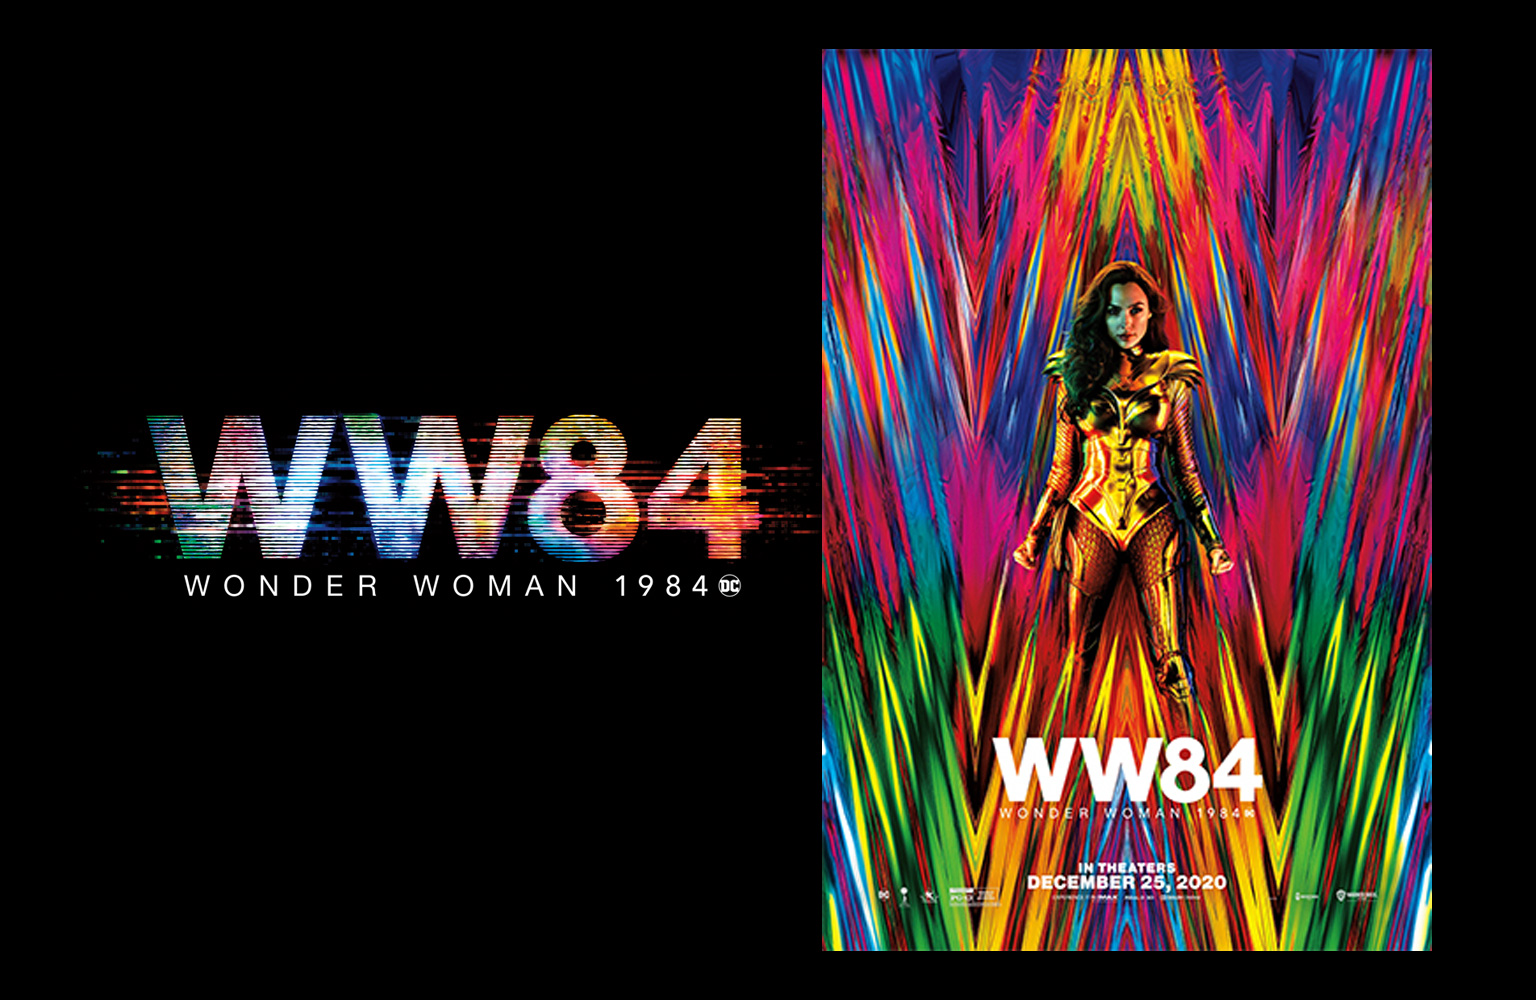 Wonder Woman 1984 poster Giveaway